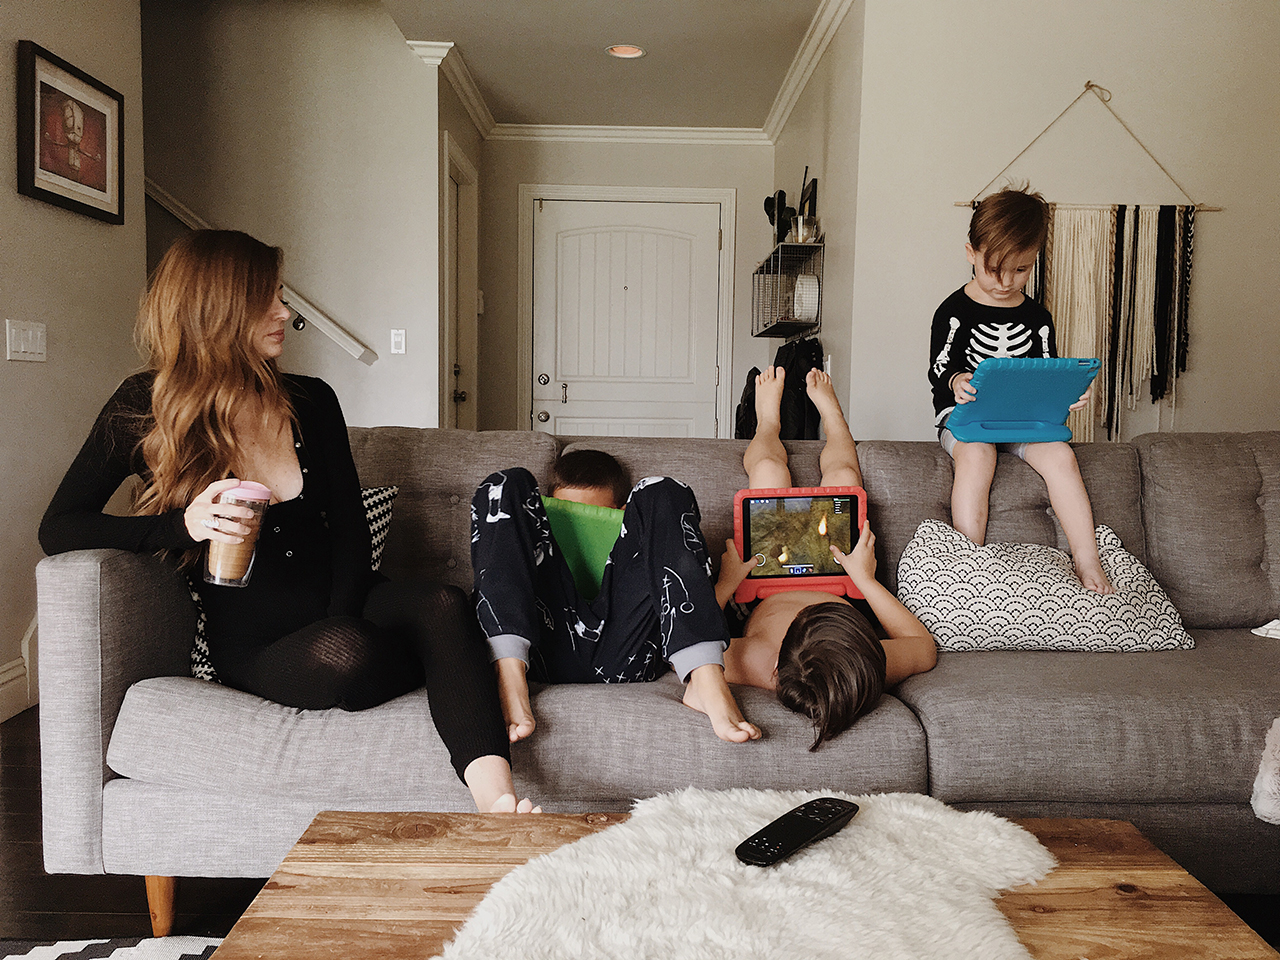 A mom surrounded by three kids on their iPads, enjoying their screen time